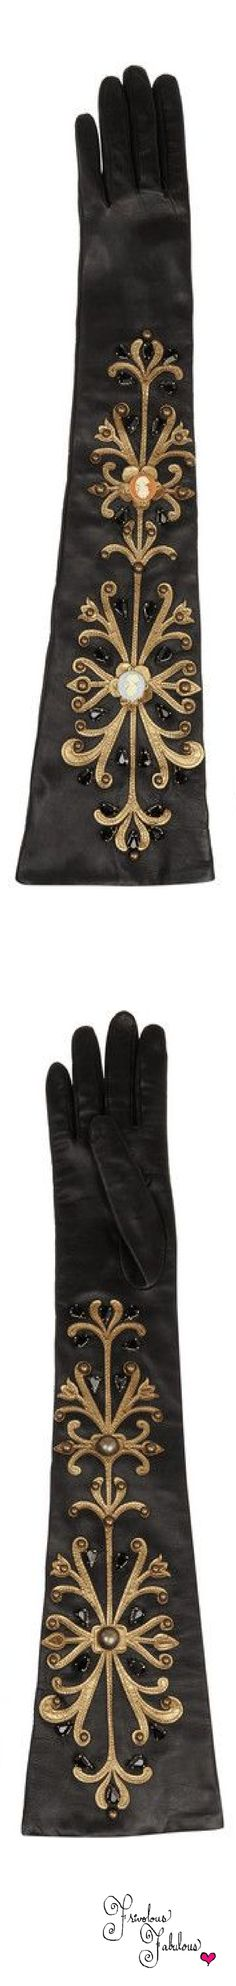 Frivolous Fabulous - Dolce & Gabbana Black Silk Gloves with Gold Embroidery